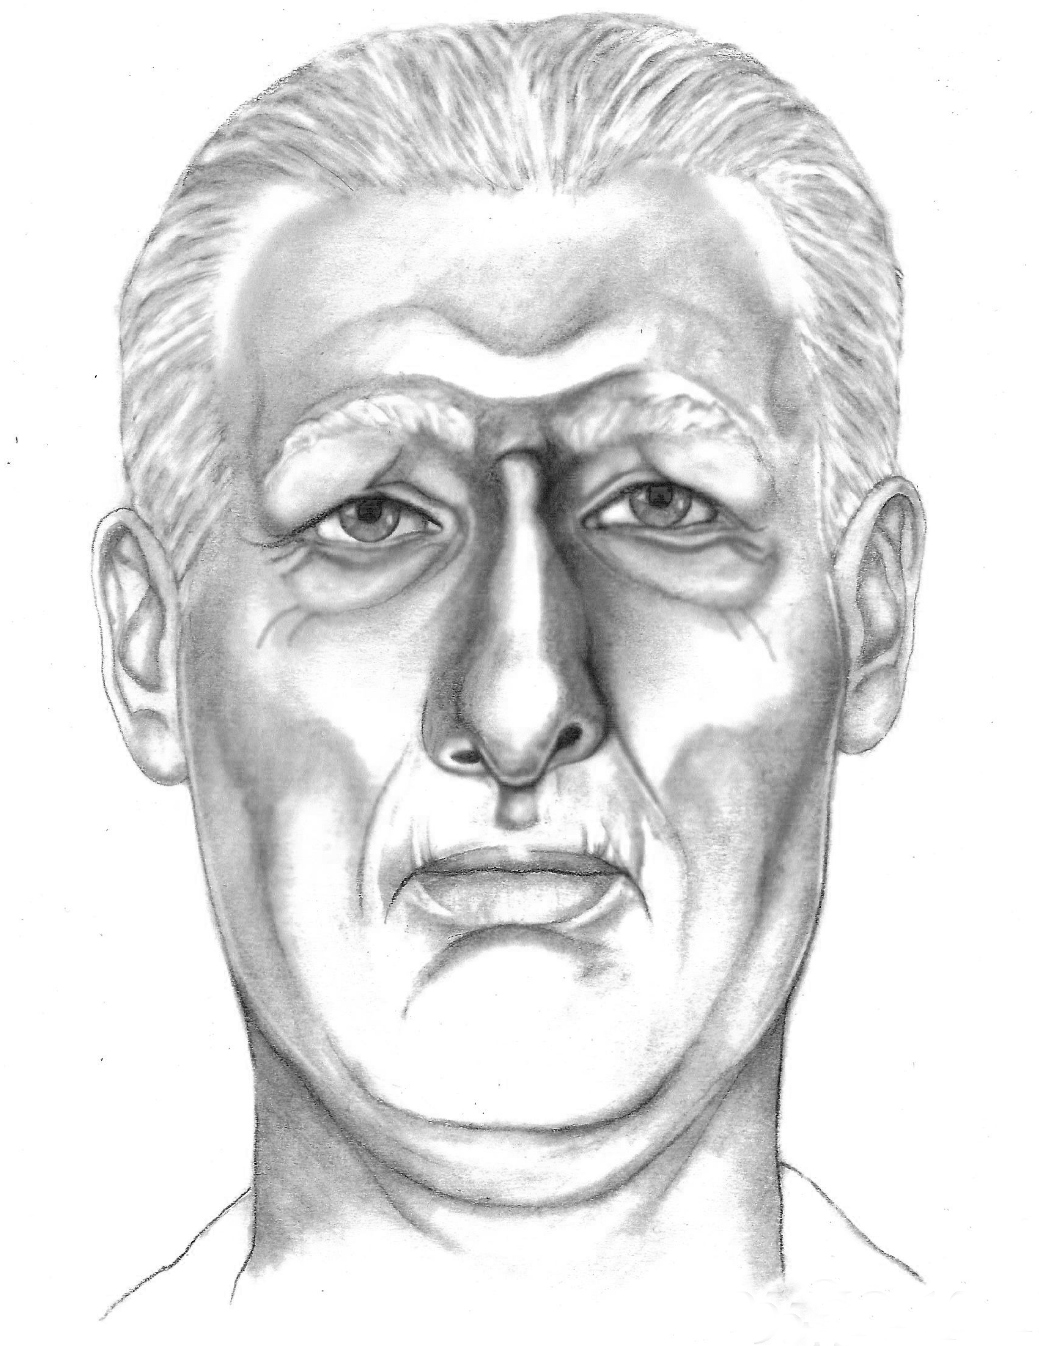 Coconino County John Doe (October 5, 1995)